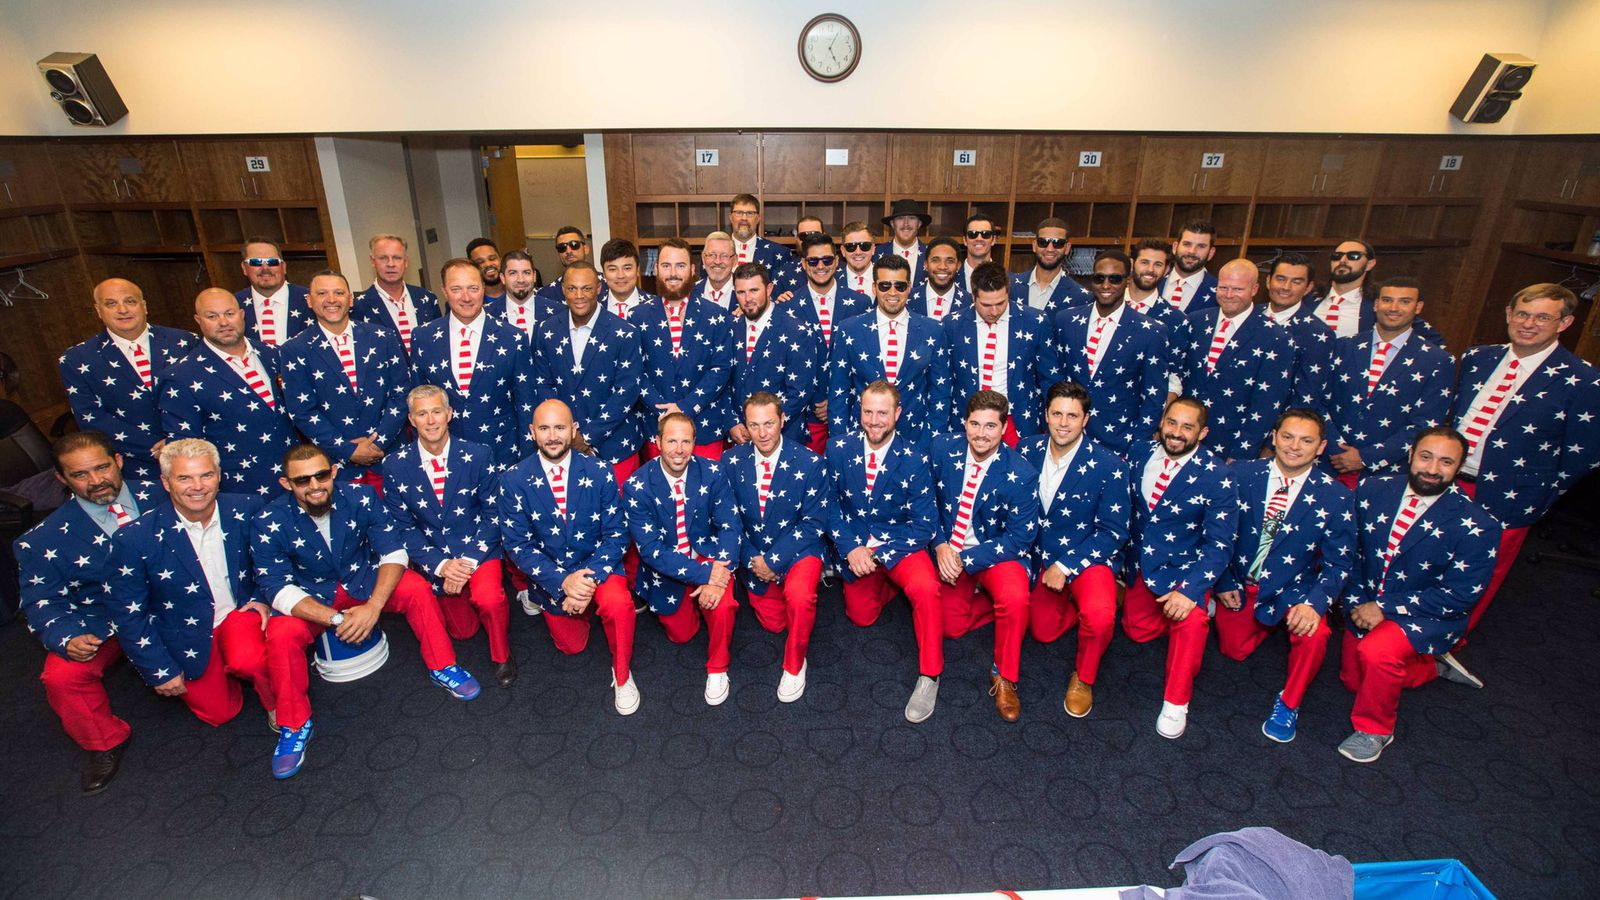 The Texas Rangers wore the most patriotic stars and stripes suits to celebrate the Fourth of July